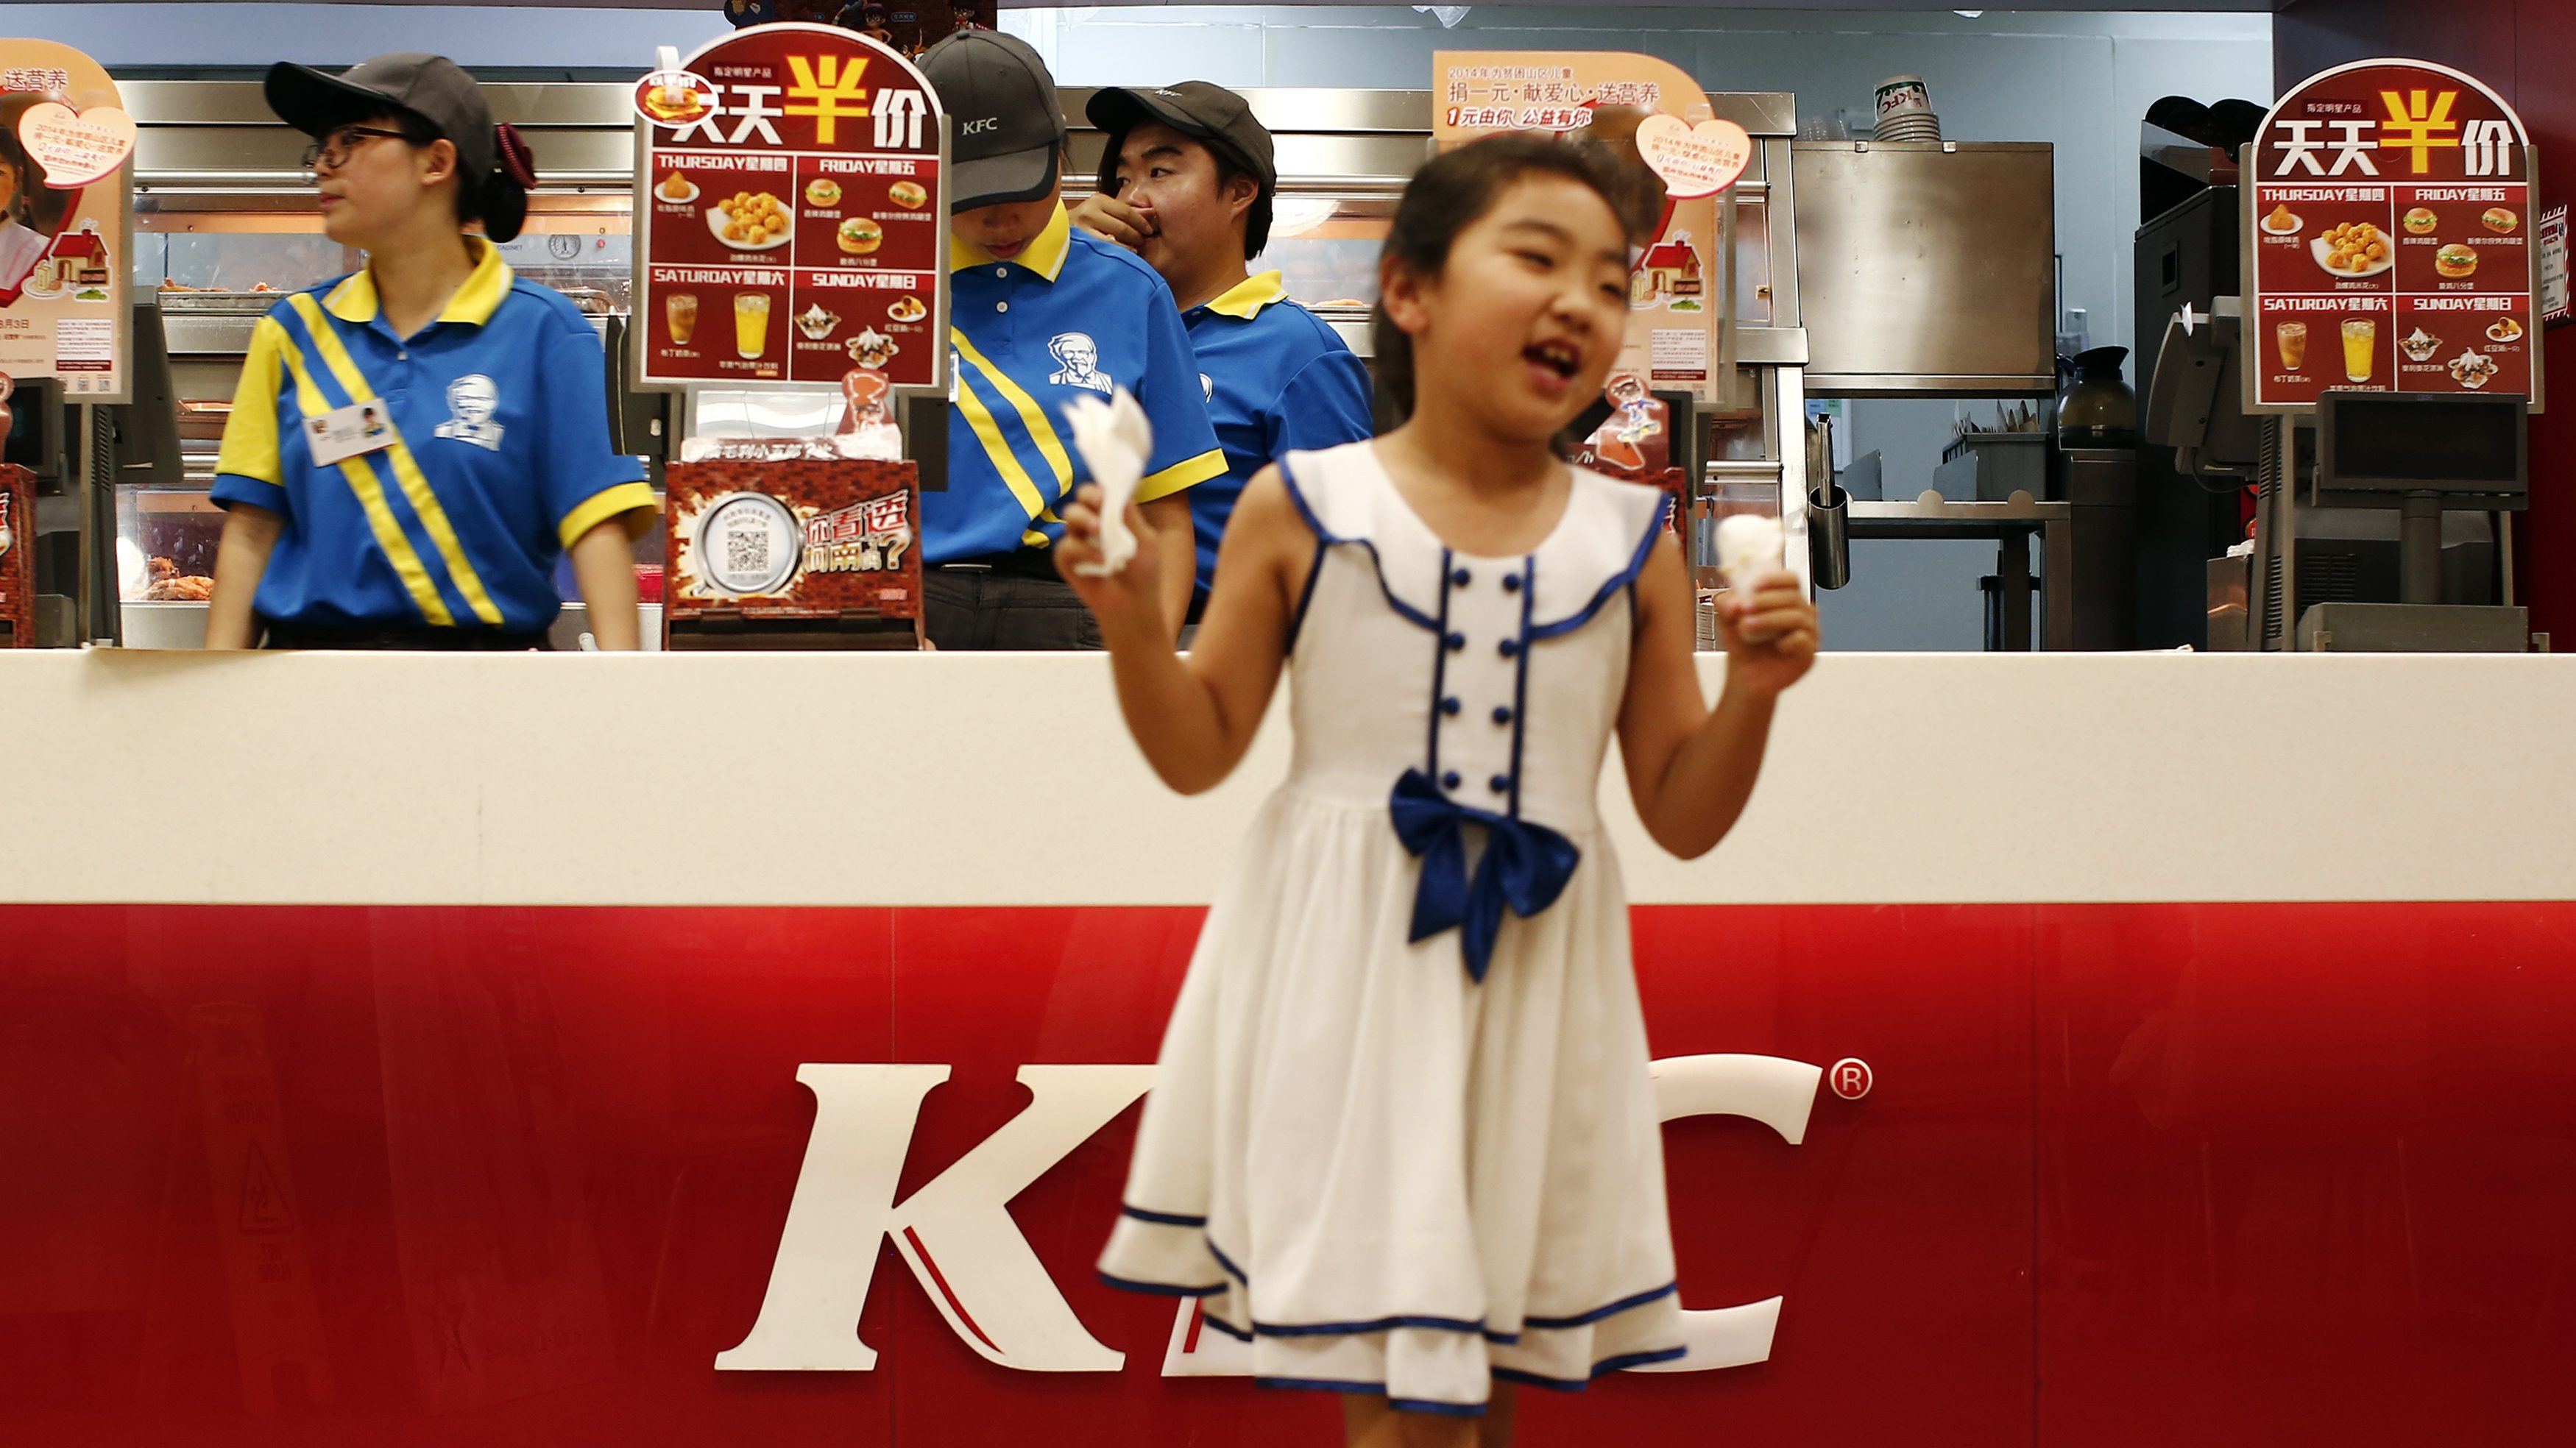 A KFC restaurant in China